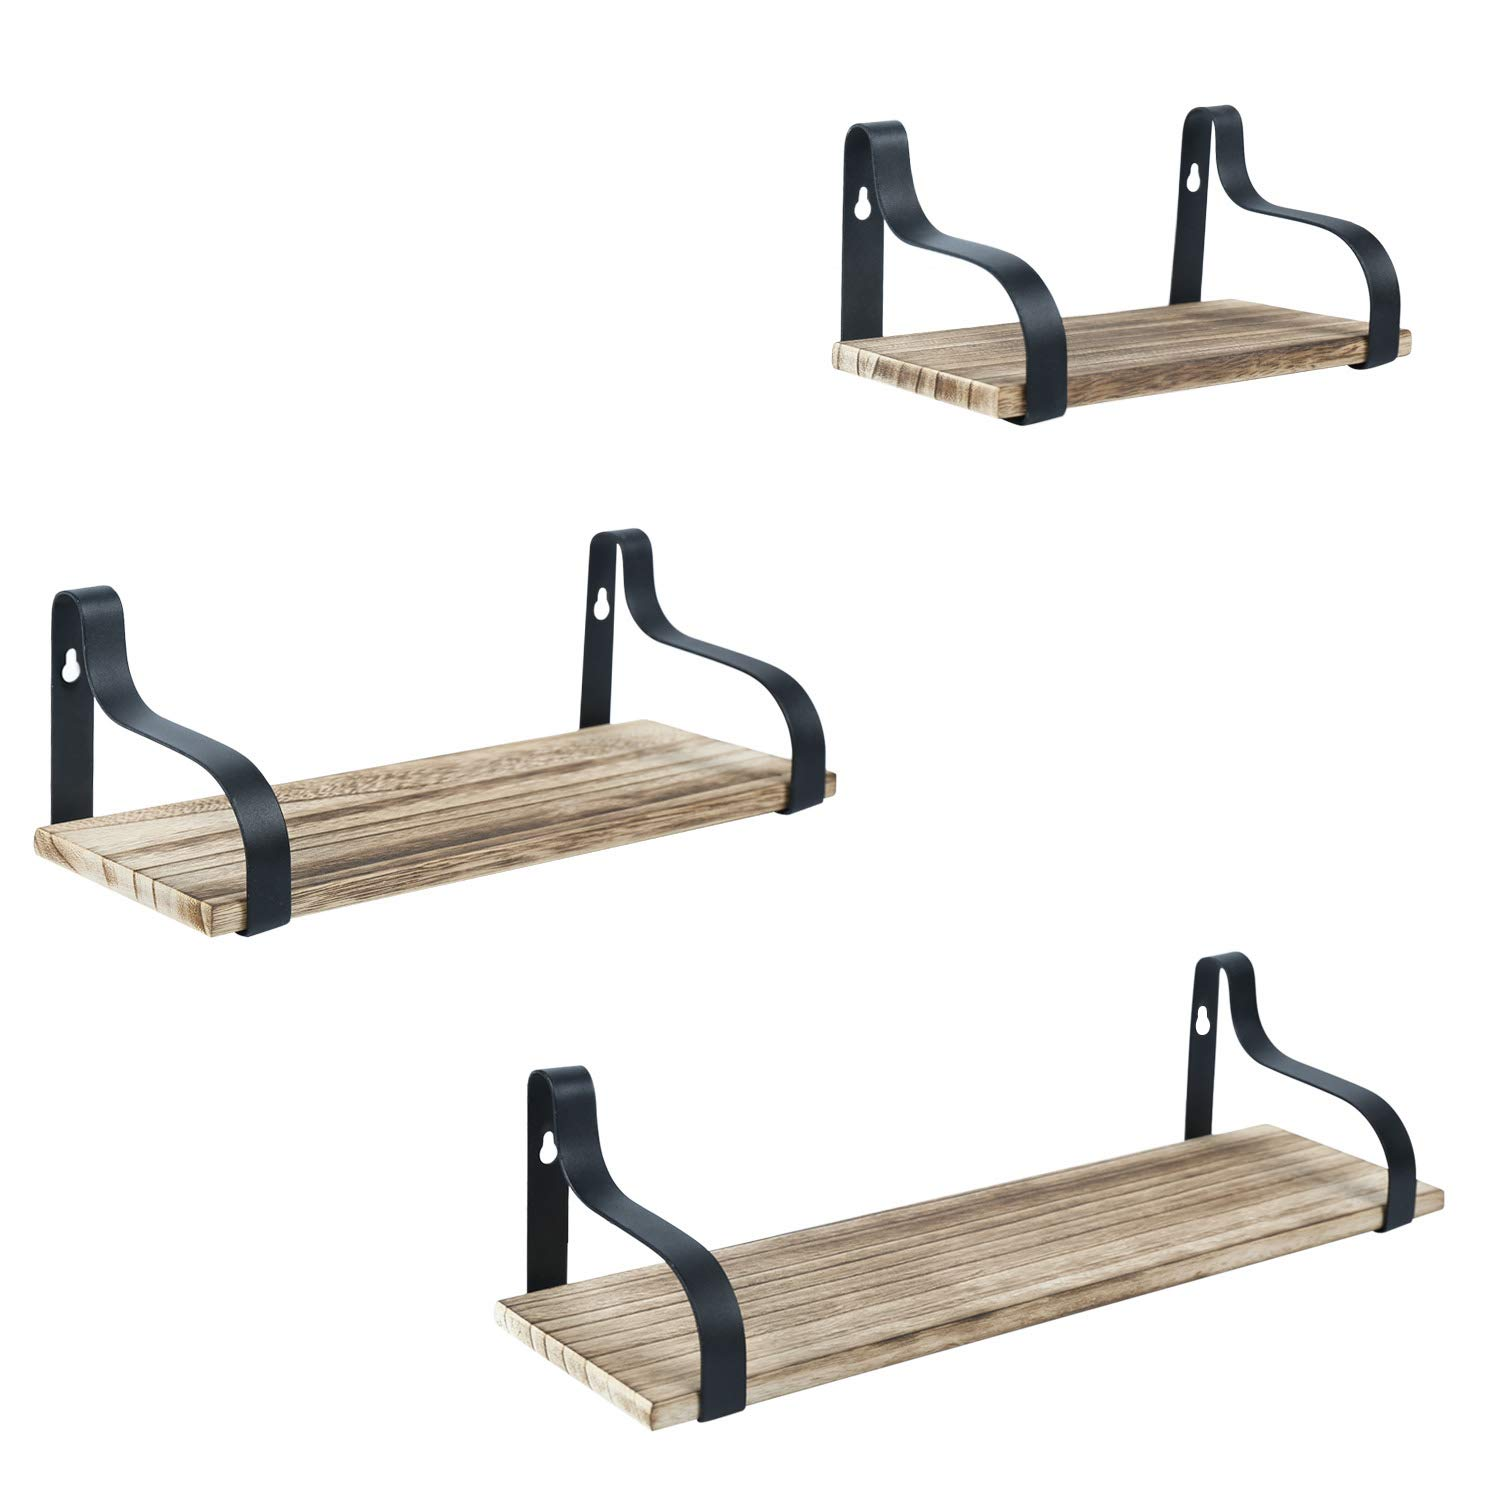 Y&ME Floating Shelves Wall Mounted Set of 3, Rustic Wood Wall Floating Shelves with Brackets, Wall Mounted Organizer Storage Shelf for Bathroom,Bedroom, Living Room, Kitchen, and Office by Y&ME